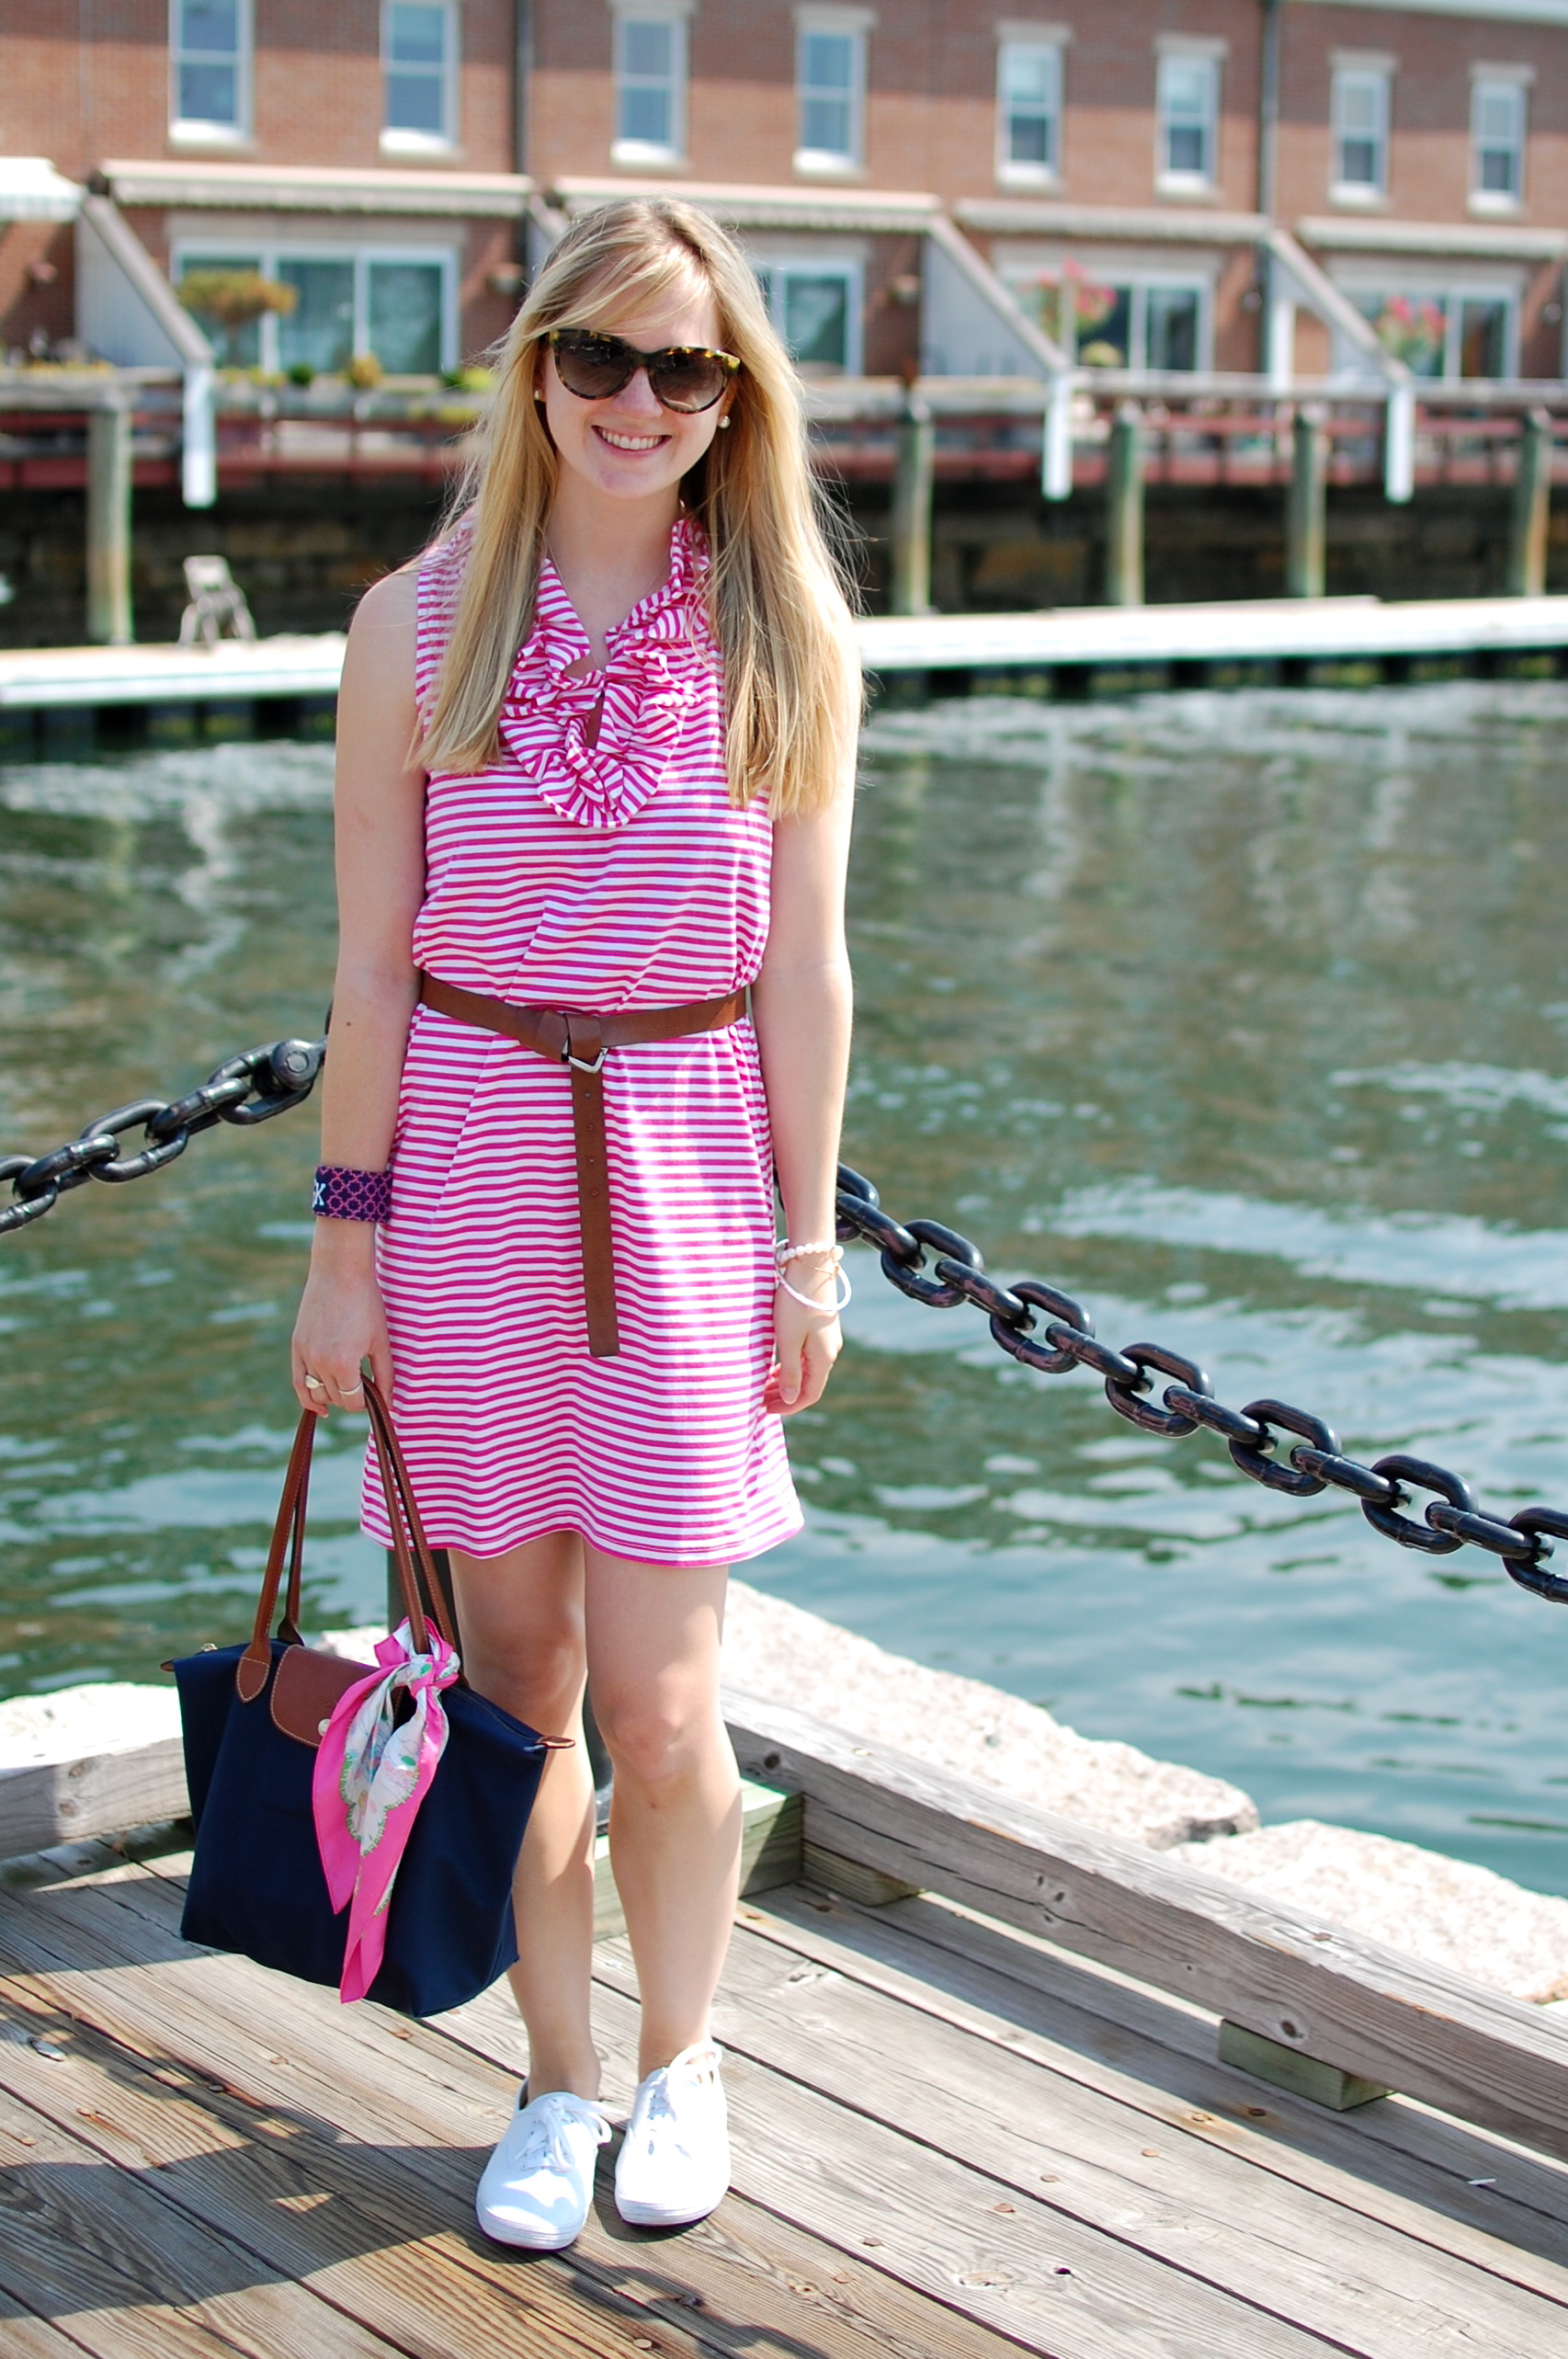 Stripes Archives Shell Chicd Lc030 Longchample Pliage Medium The City Le Tote Longchamp Scarf Lilly Pulitzer Similar Tennis Shoes Sneaks